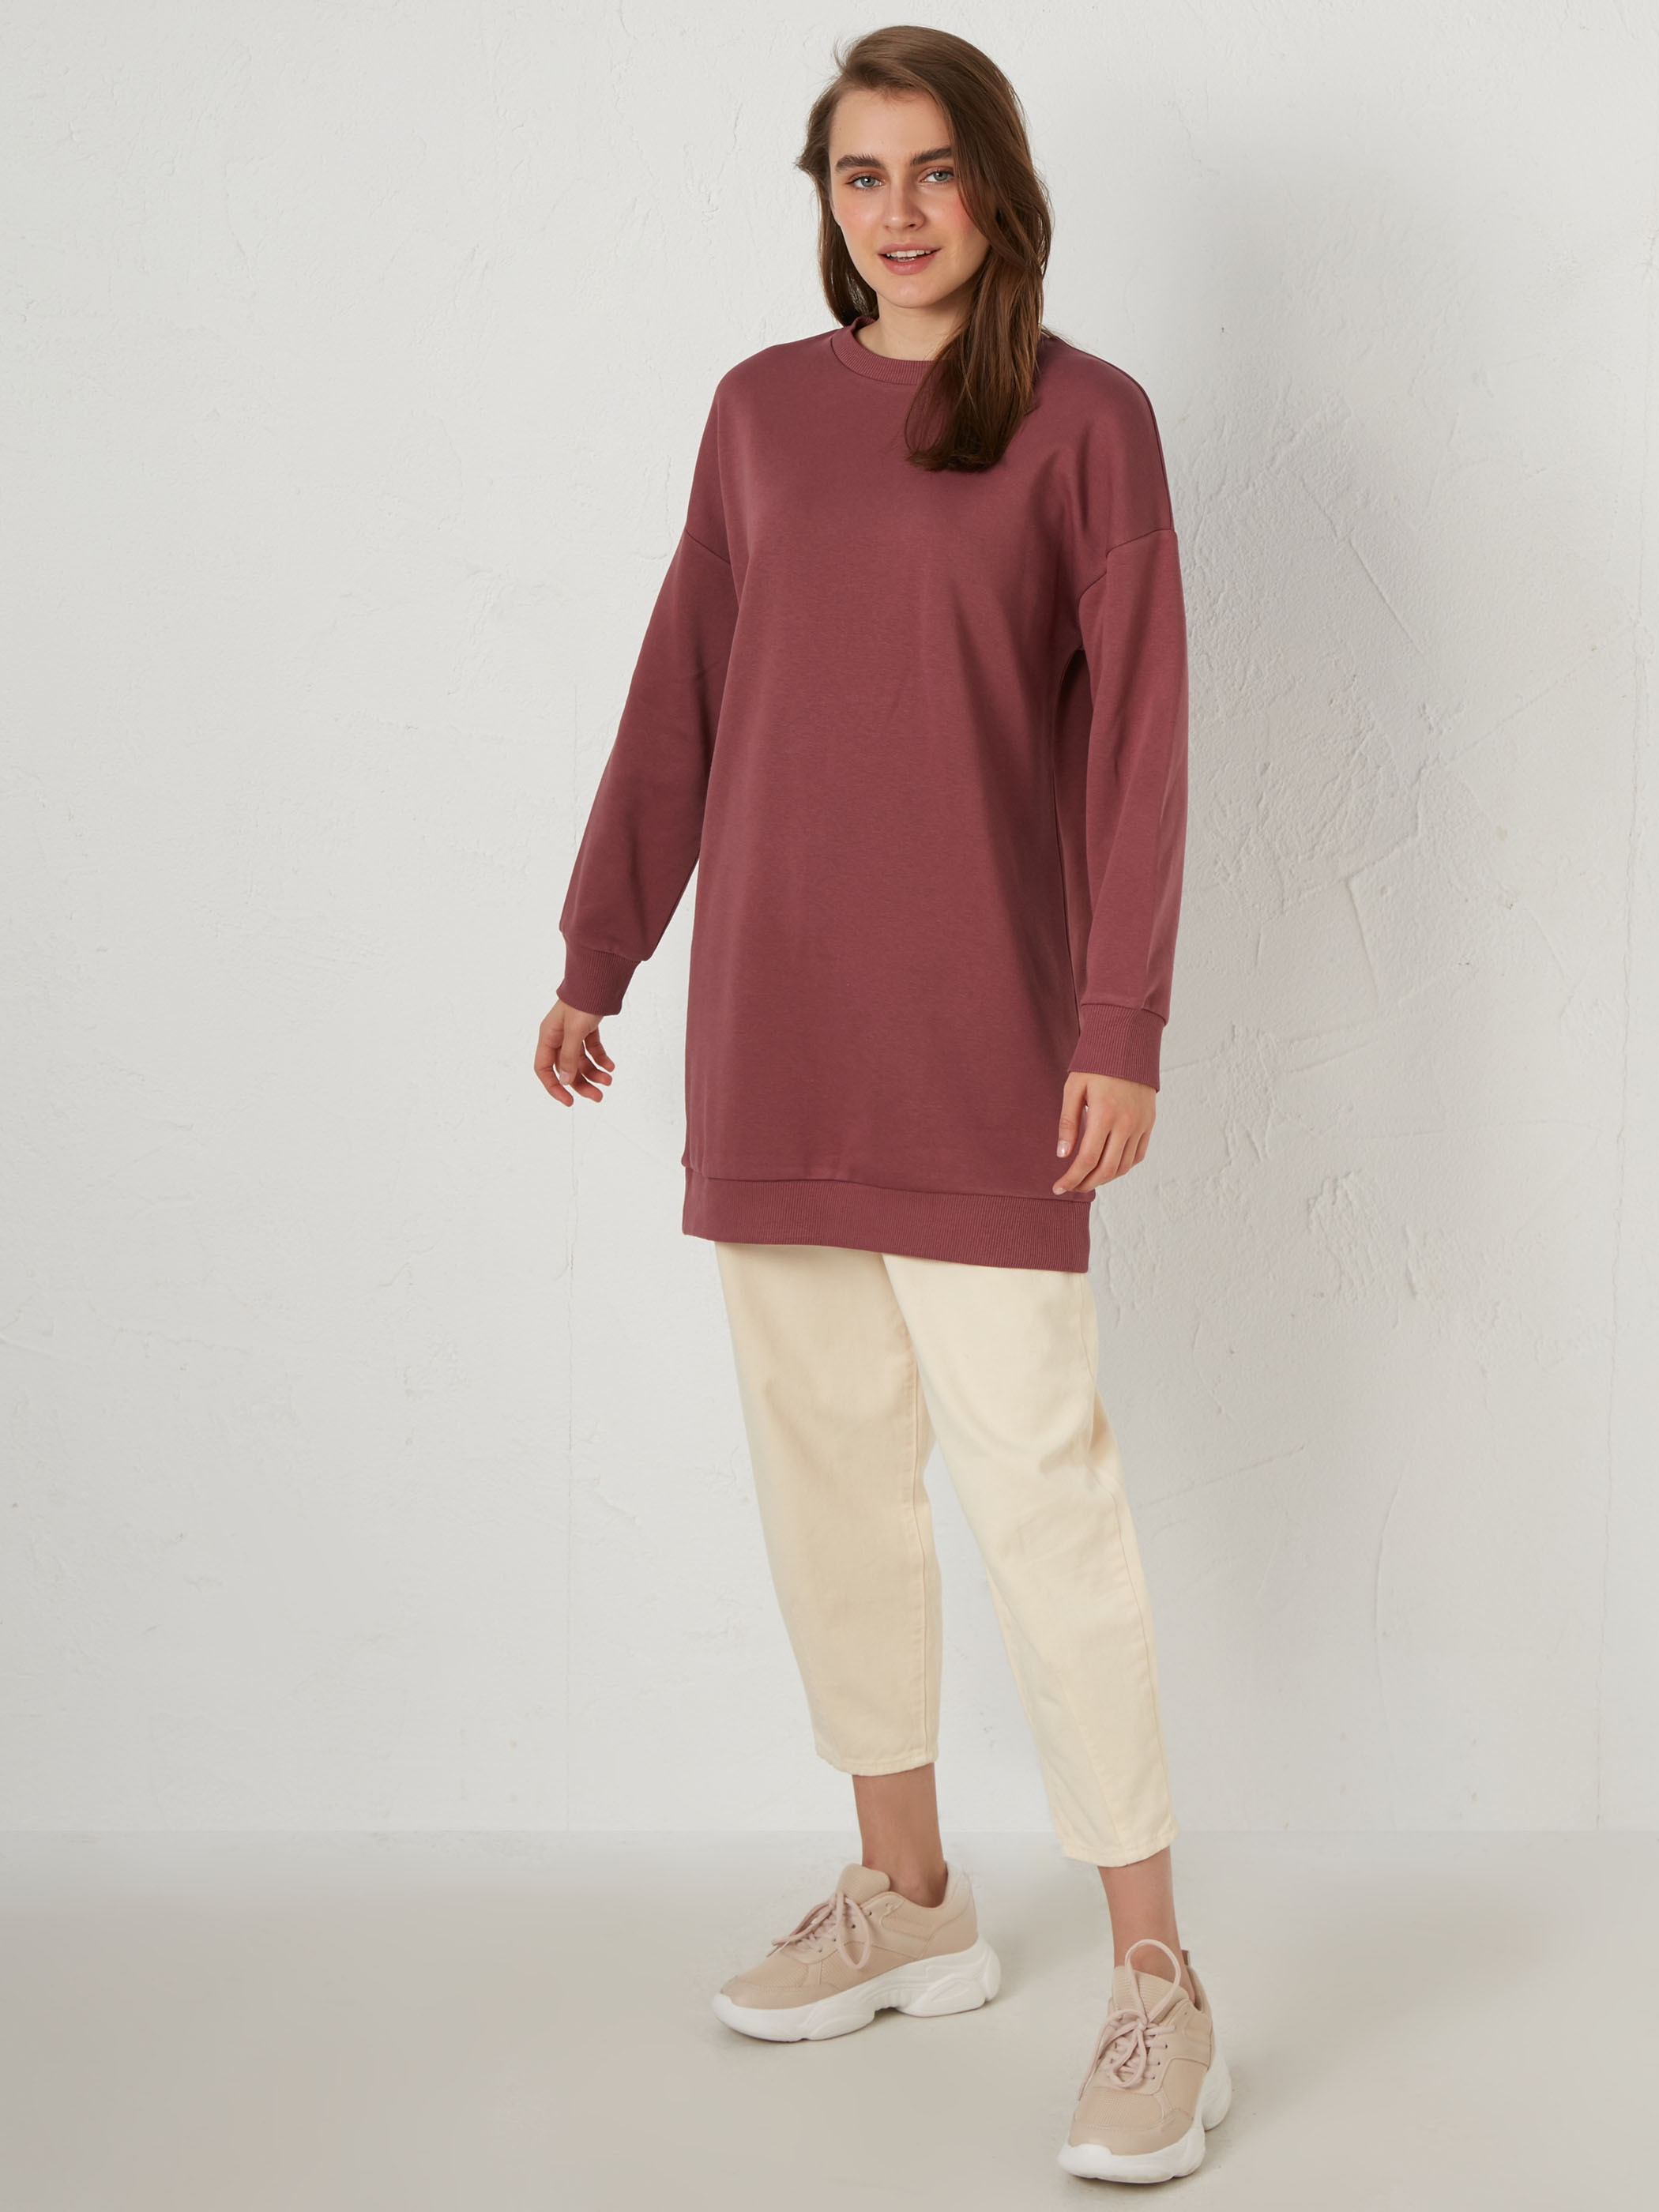 PINK - Plain Basic Sweatshirt - 0WGU46Z8